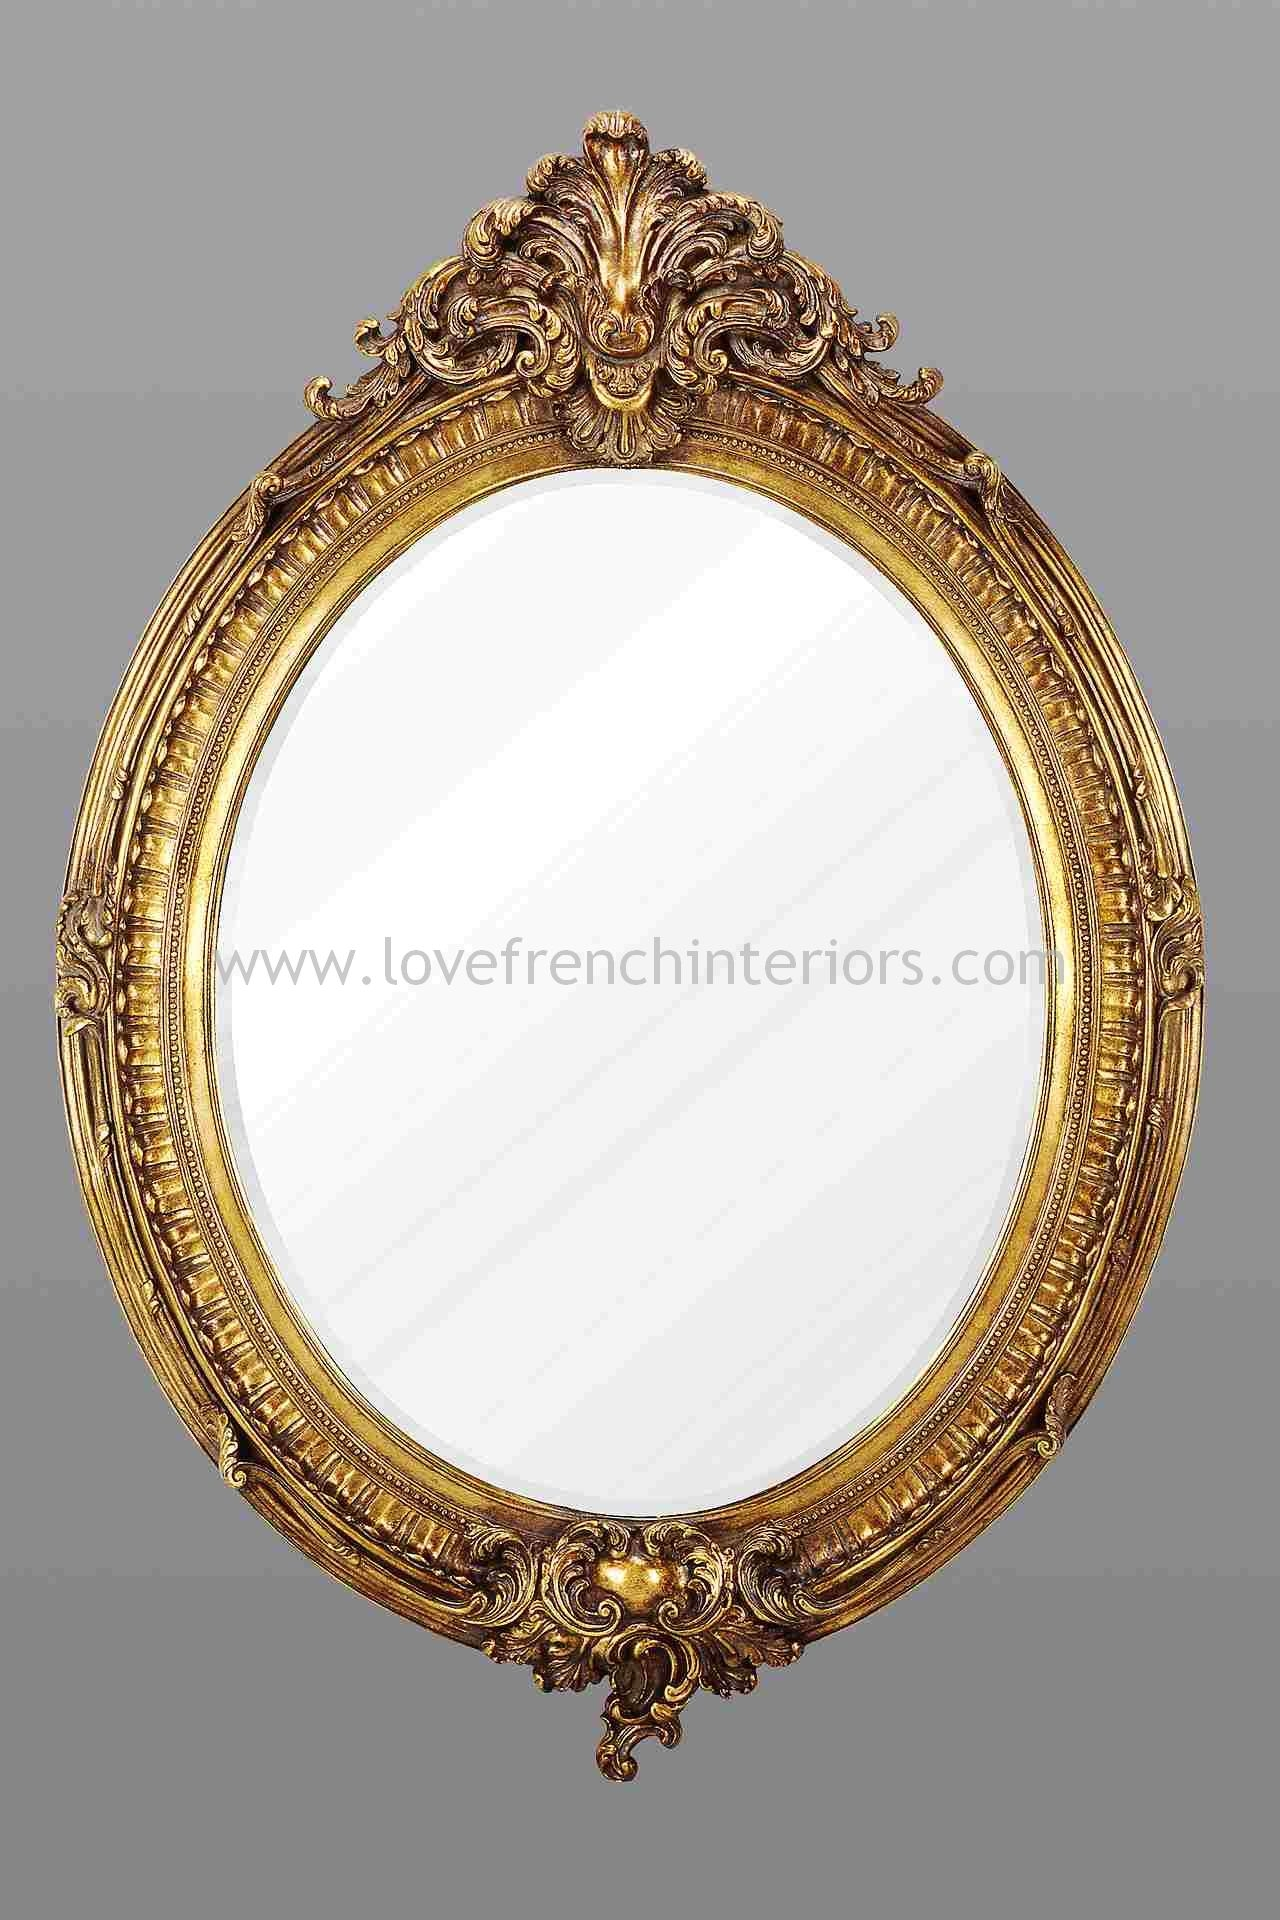 Gold Oval French Mirror Pertaining To Antique Gold Mirror French (Image 13 of 15)